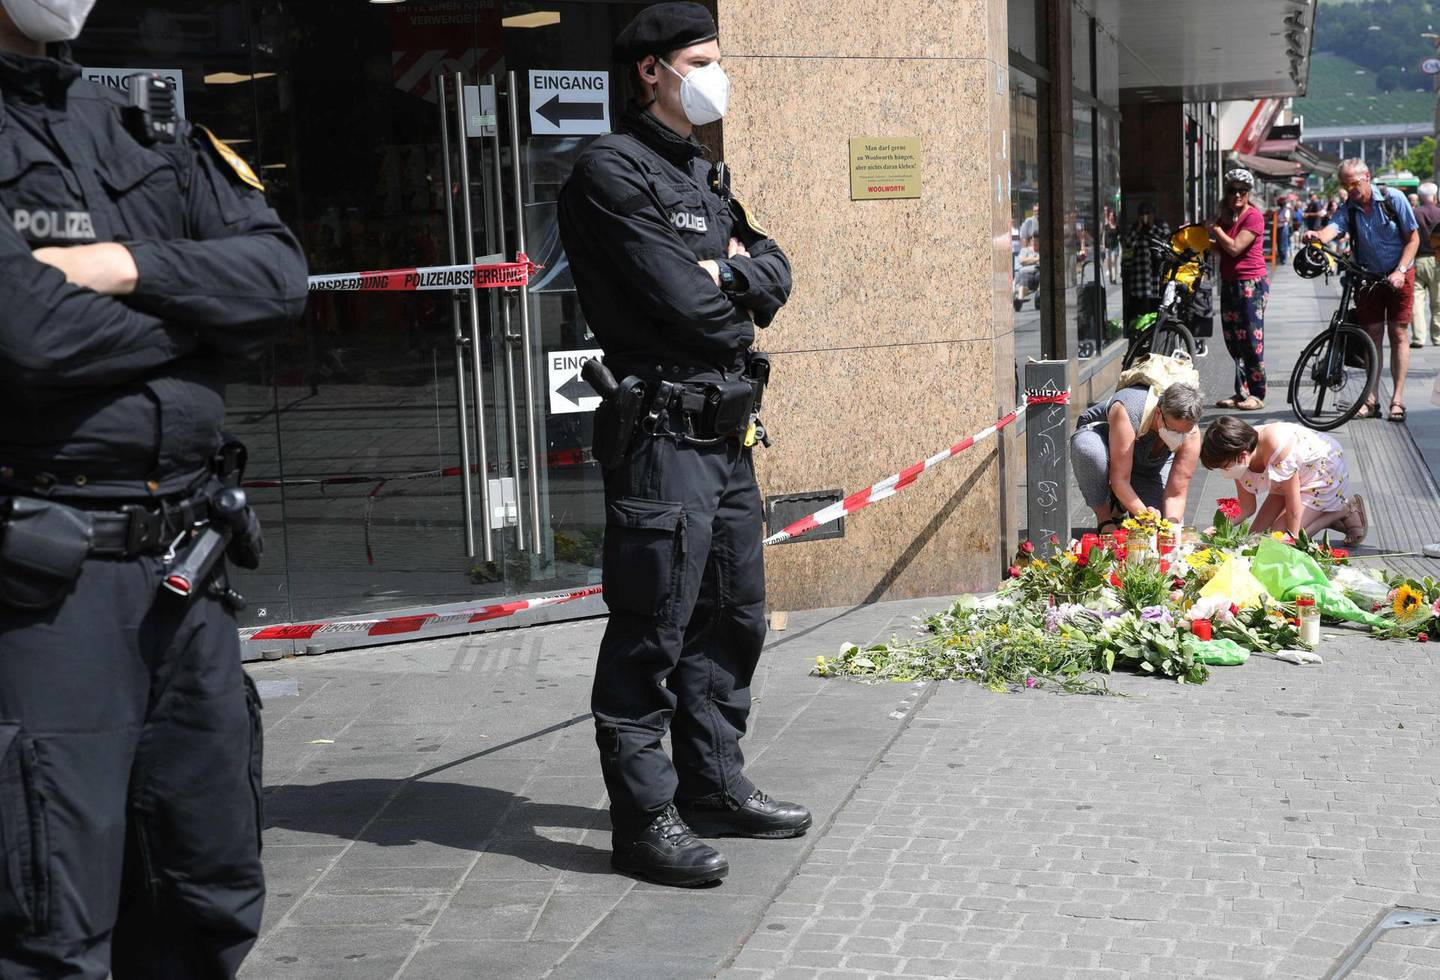 Policemen stand guard as people place flowers and candles at a makeshift memorial in tribute to the victims of a deadly attack in the city center of Wuerzburg, southern Germany, on June 26, 2021. Investigators were racing to pinpoint the motive of a man who went on a knife rampage in the German city of Wuerzburg, killing three people and leaving five seriously injured. The suspect, a 24-year-old Somali who arrived in Wuerzburg in 2015, staged the attack in the city centre on the evening of Friday, June 25, 2021, striking at a household goods store before advancing to a bank. / AFP / ARMANDO BABANI